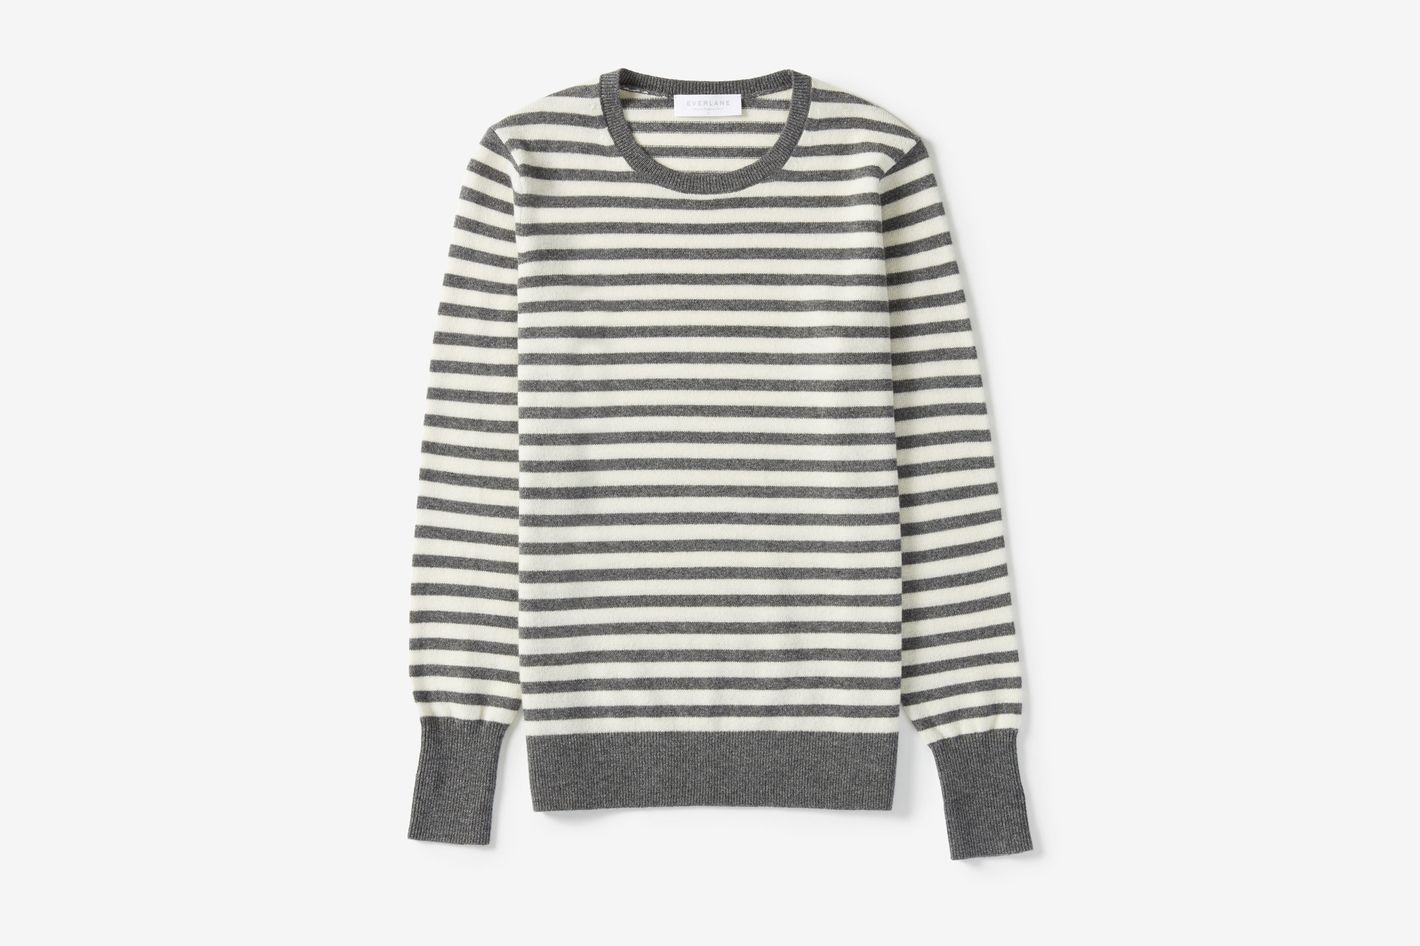 Cashmere Crew in Charcoal/Bone Stripe